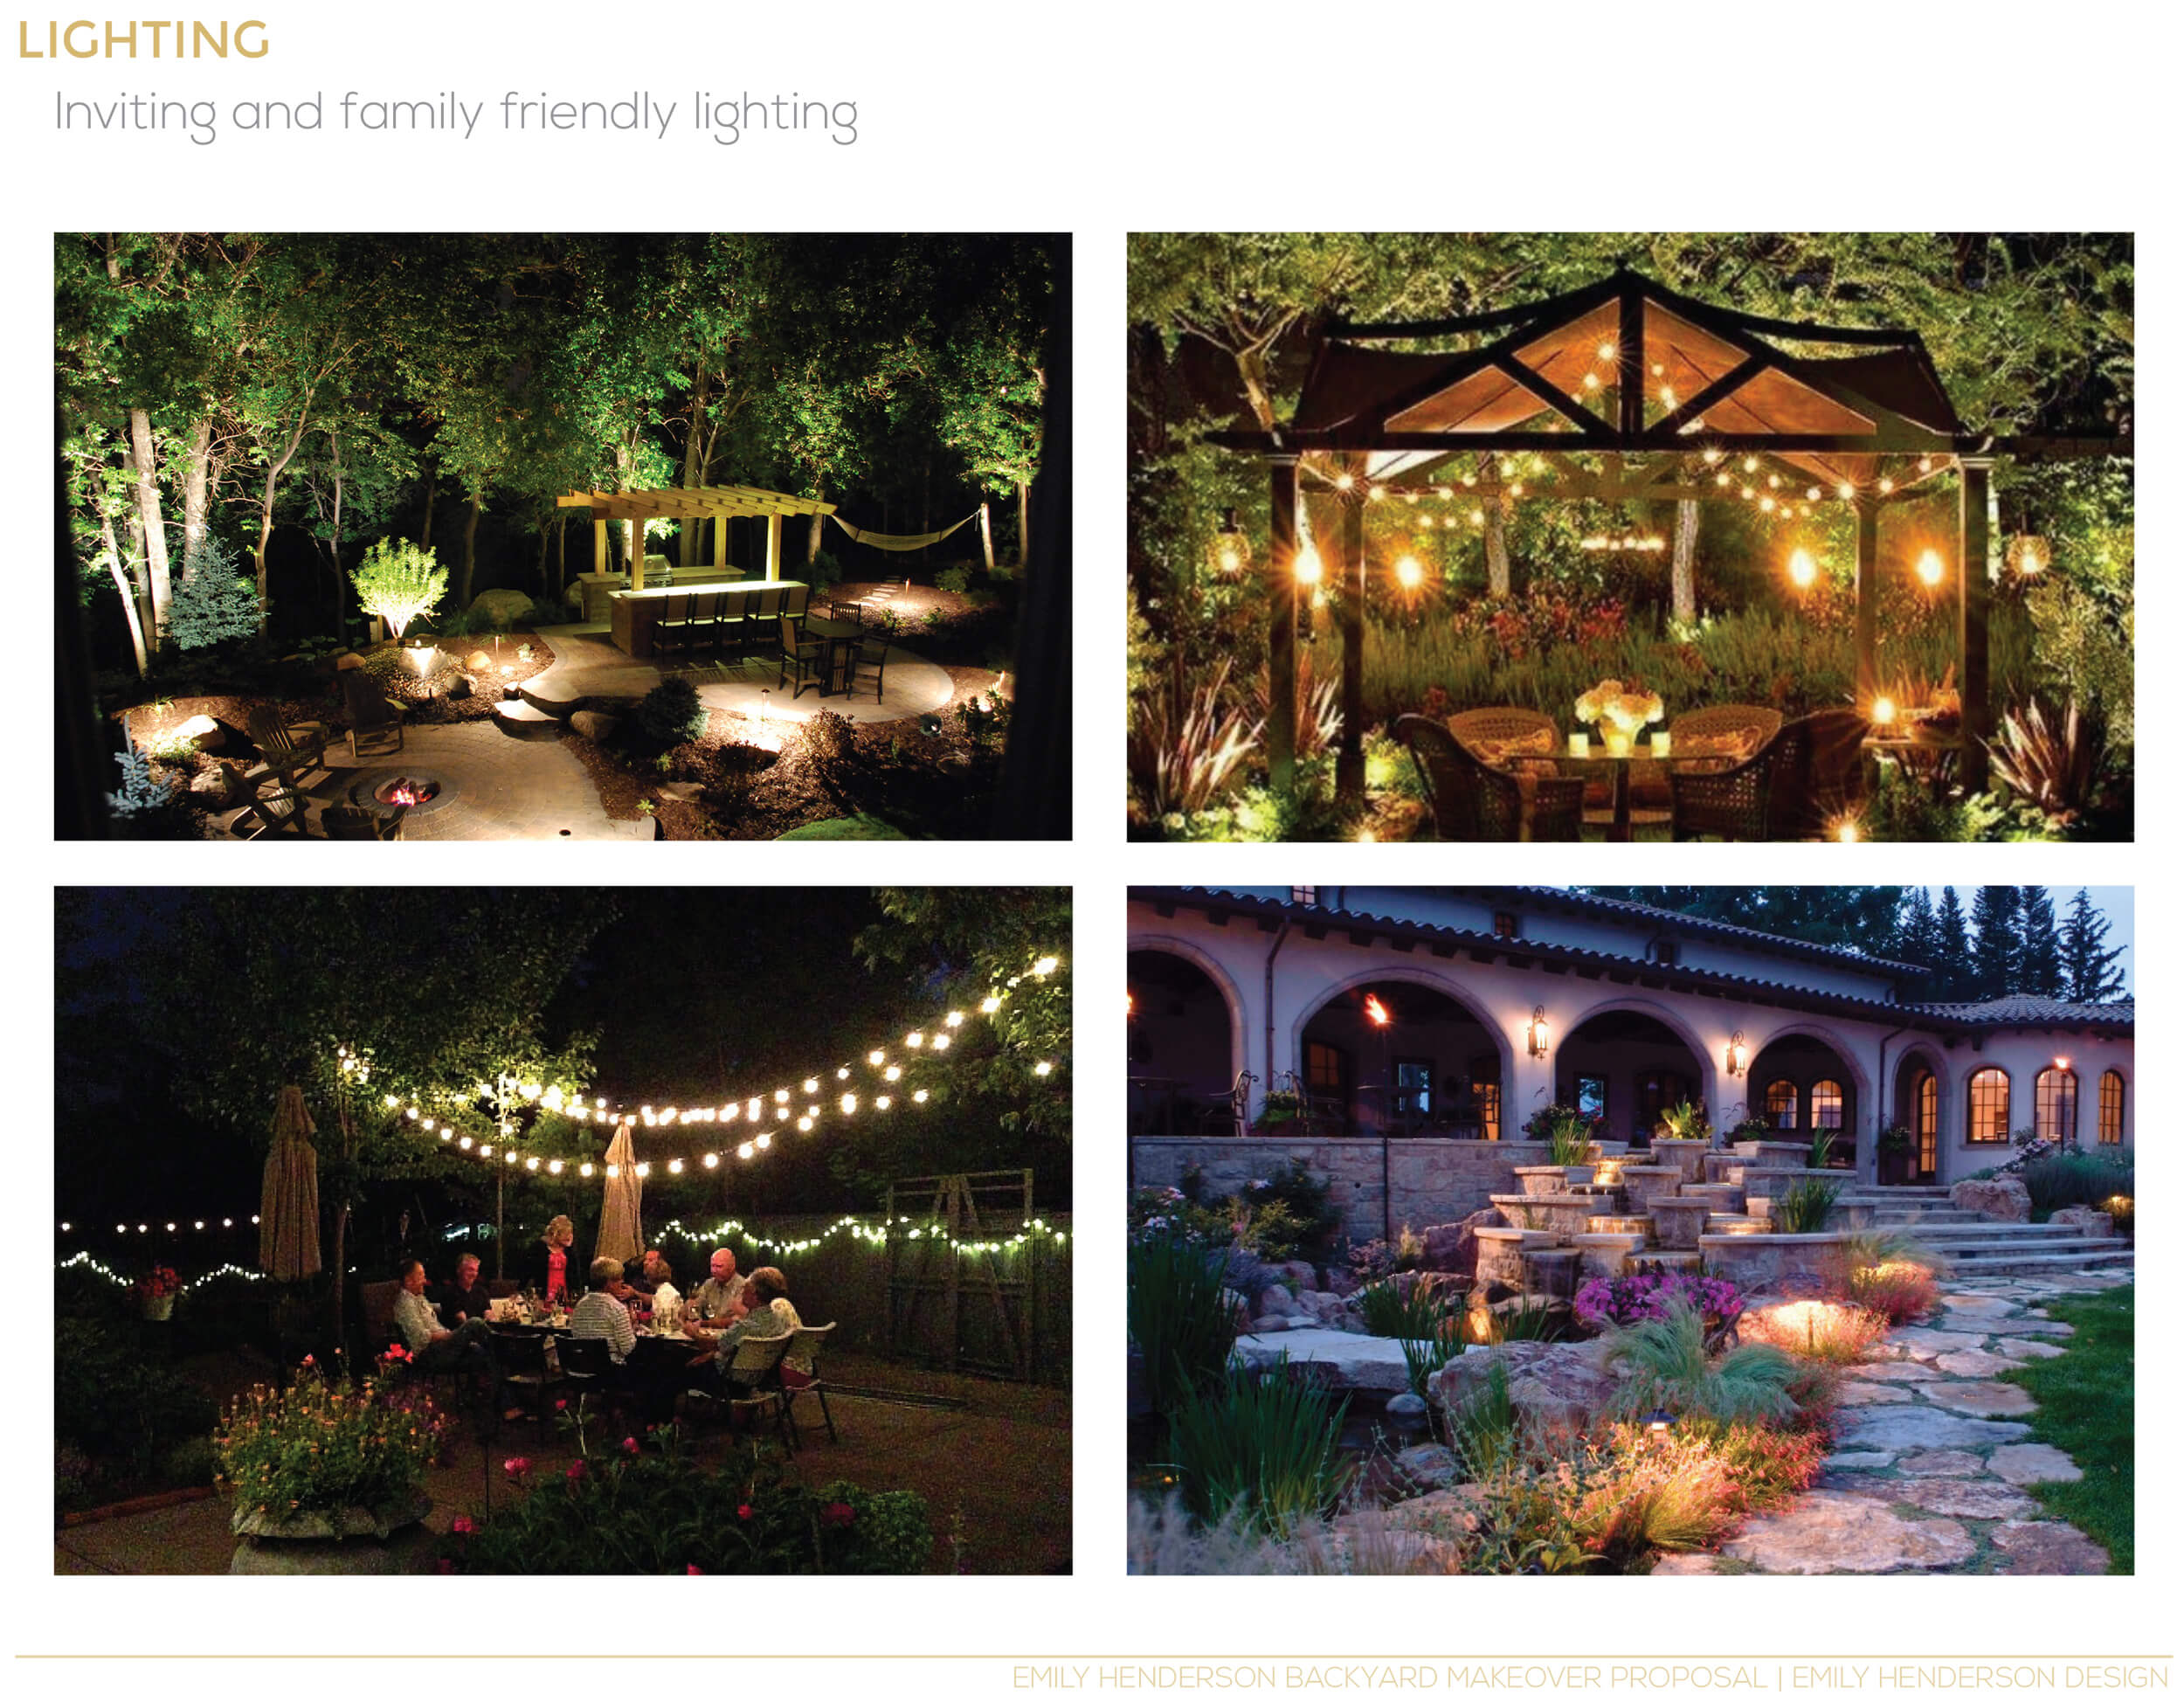 Ideas For The Most Family Friendly Backyard Ever Emily Henderson Backyard Backyard Retreat Backyard Makeover